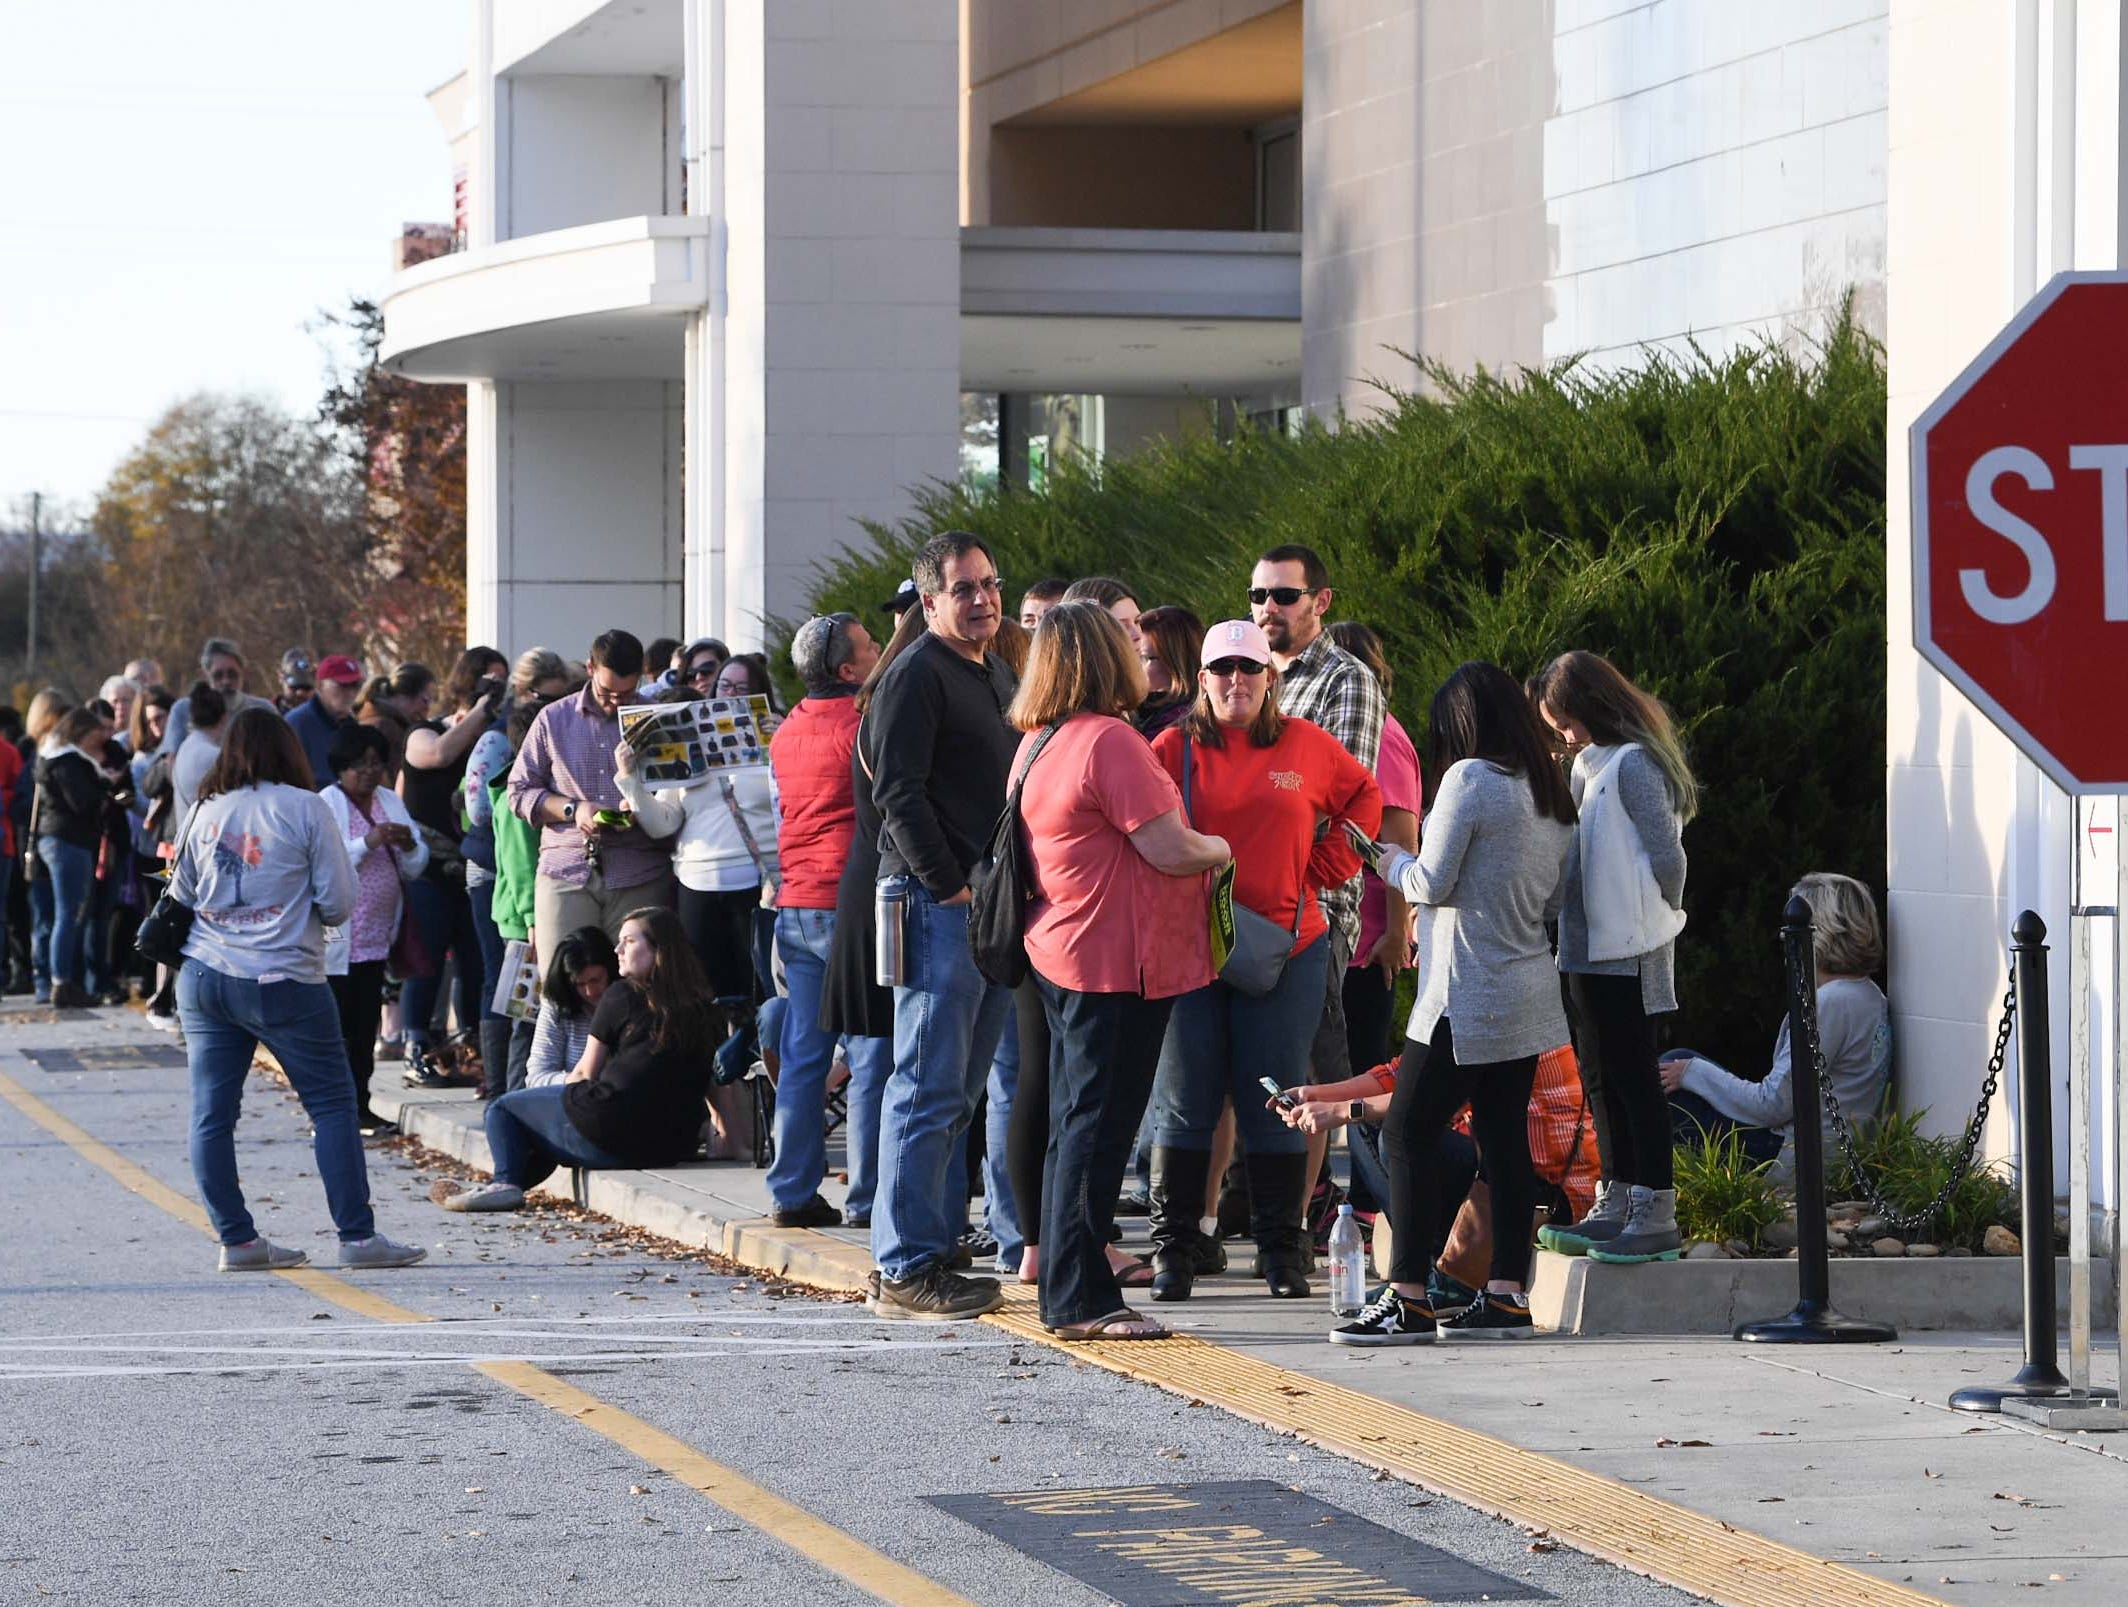 People wait in line for doors to open for Black Friday sales at Kohl's in Anderson on Thanksgiving Day, Thursday, November 22, 2018.